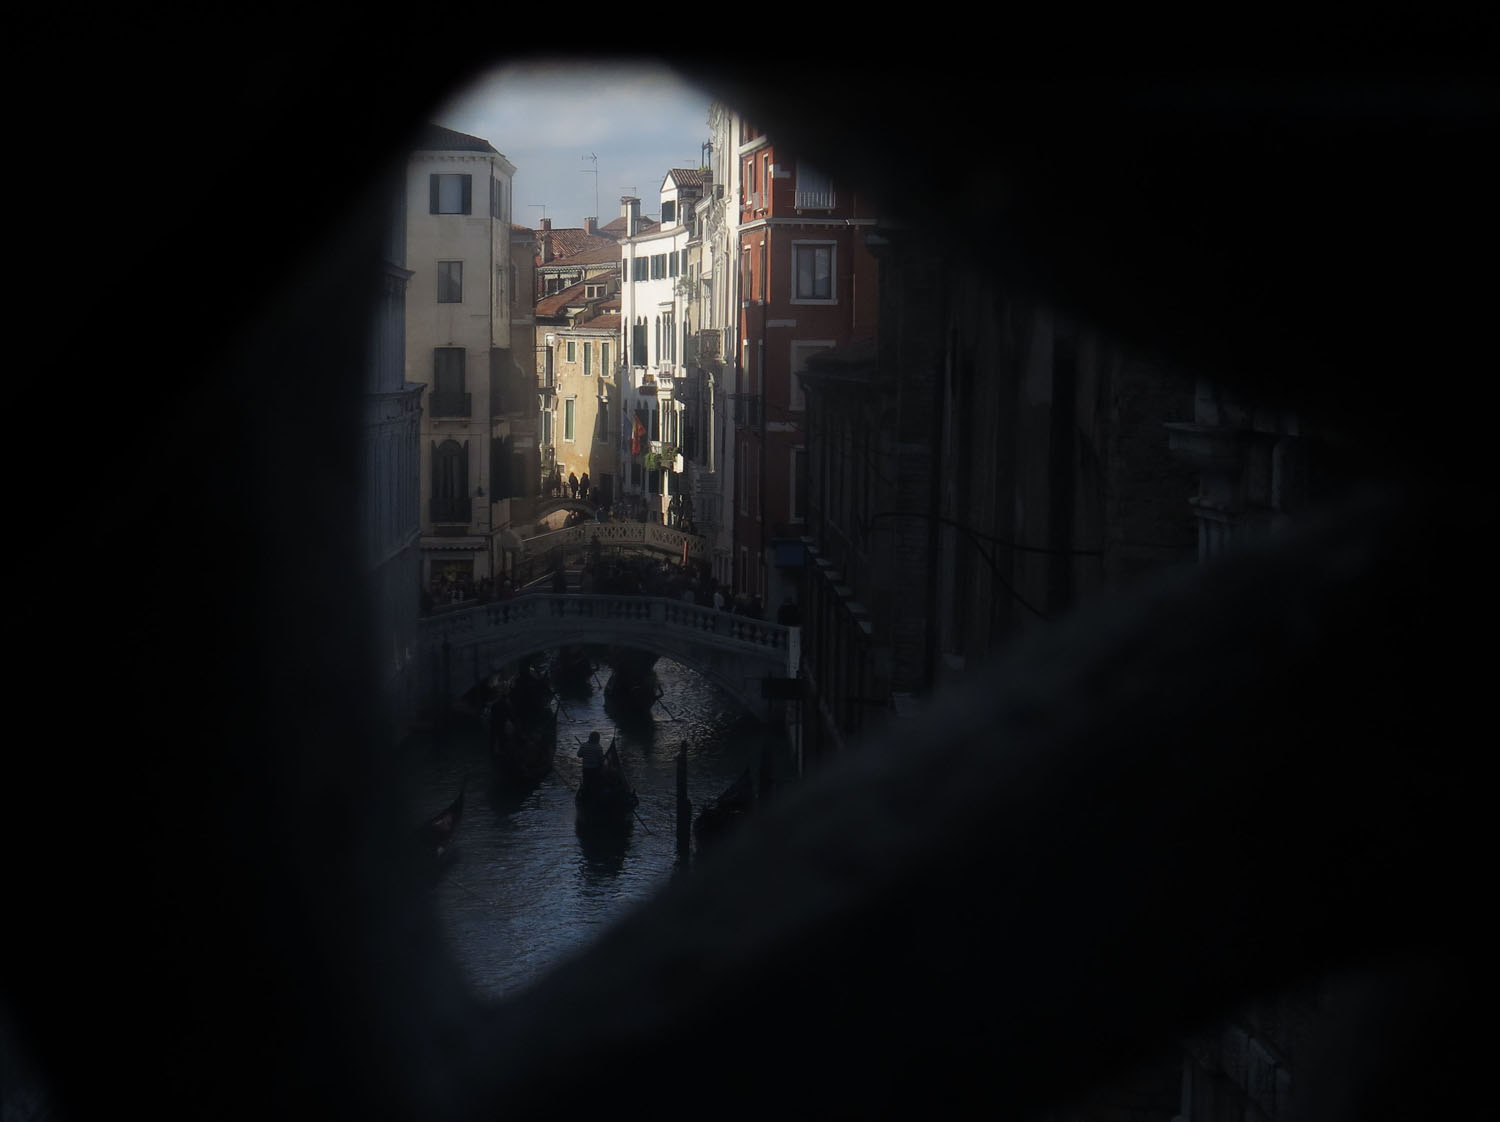 Italy-Venice-Doges-Palace-Bridge-Of-Sighs-Looking-Out